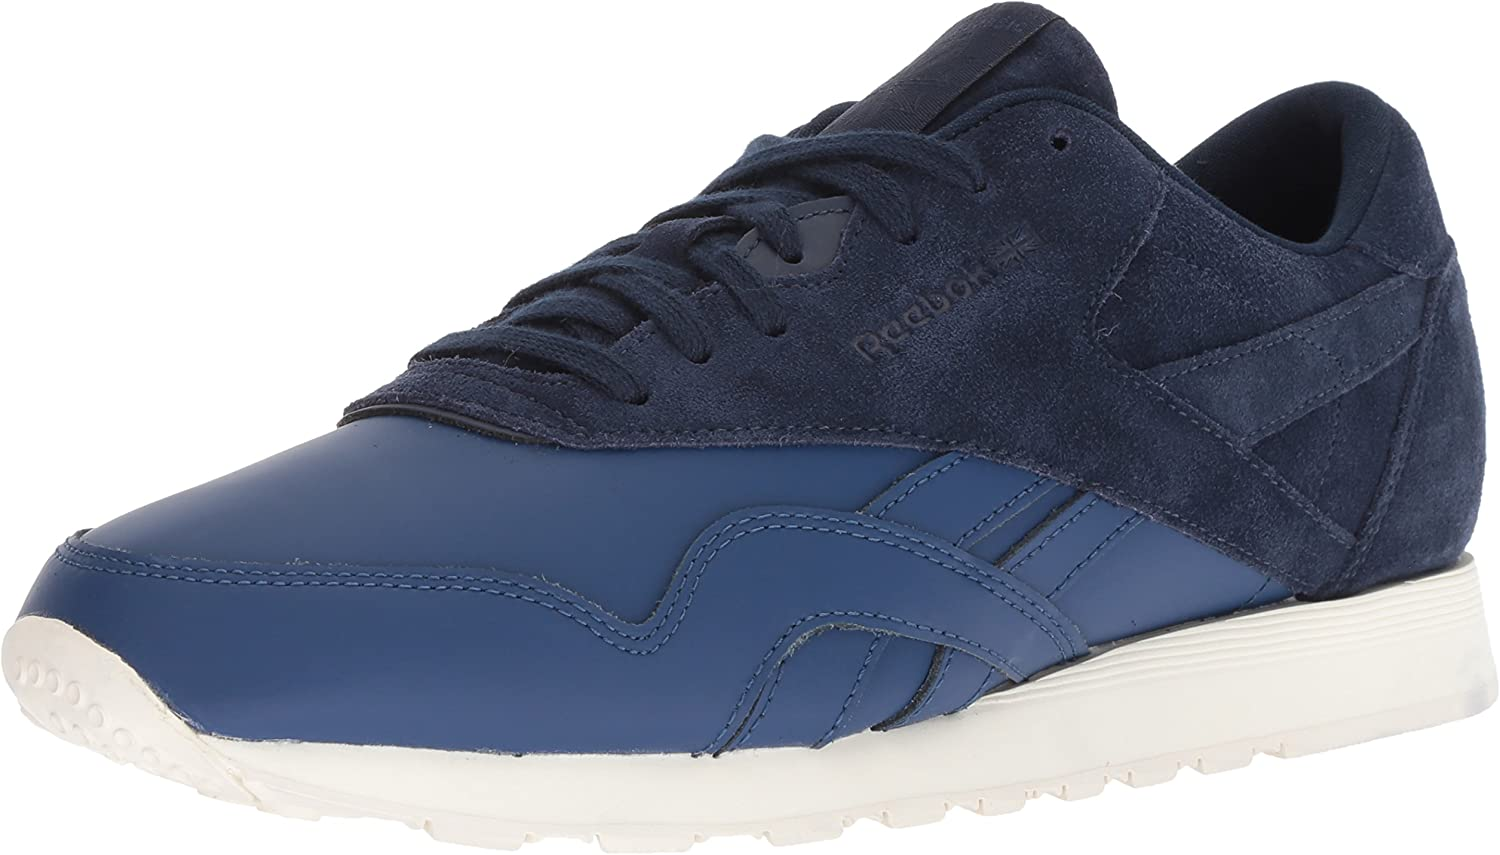 Reebok Men's CL Nylon AS Sneaker, Washed bluee Collegiate Natural, 13 M US